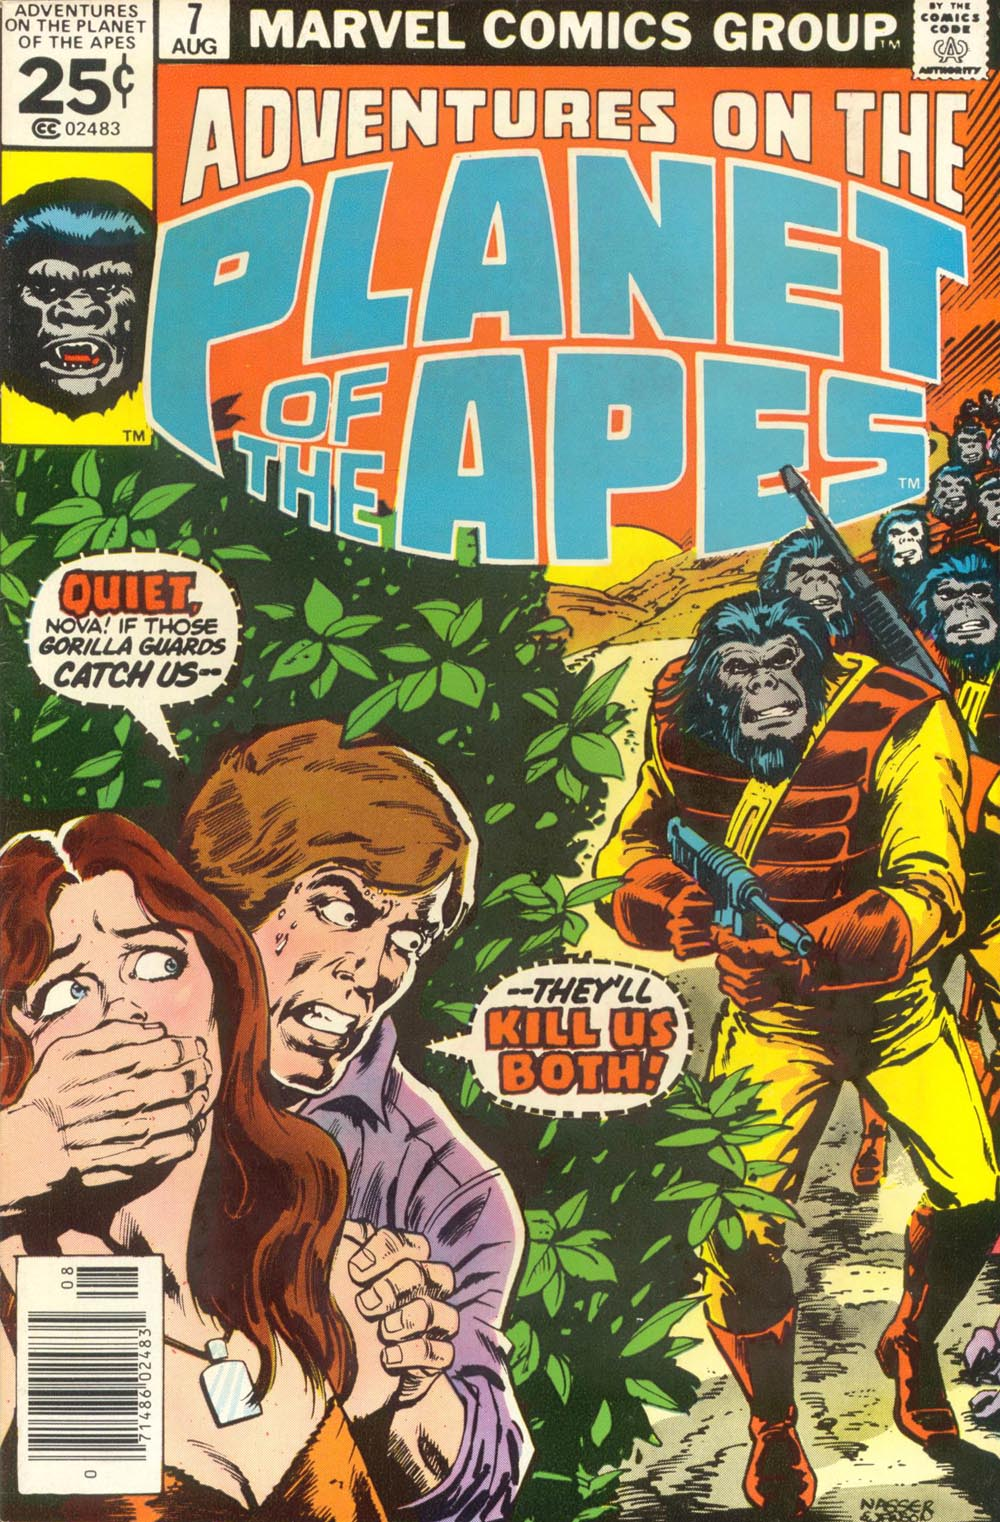 Adventures on the Planet of the Apes 7 Page 1